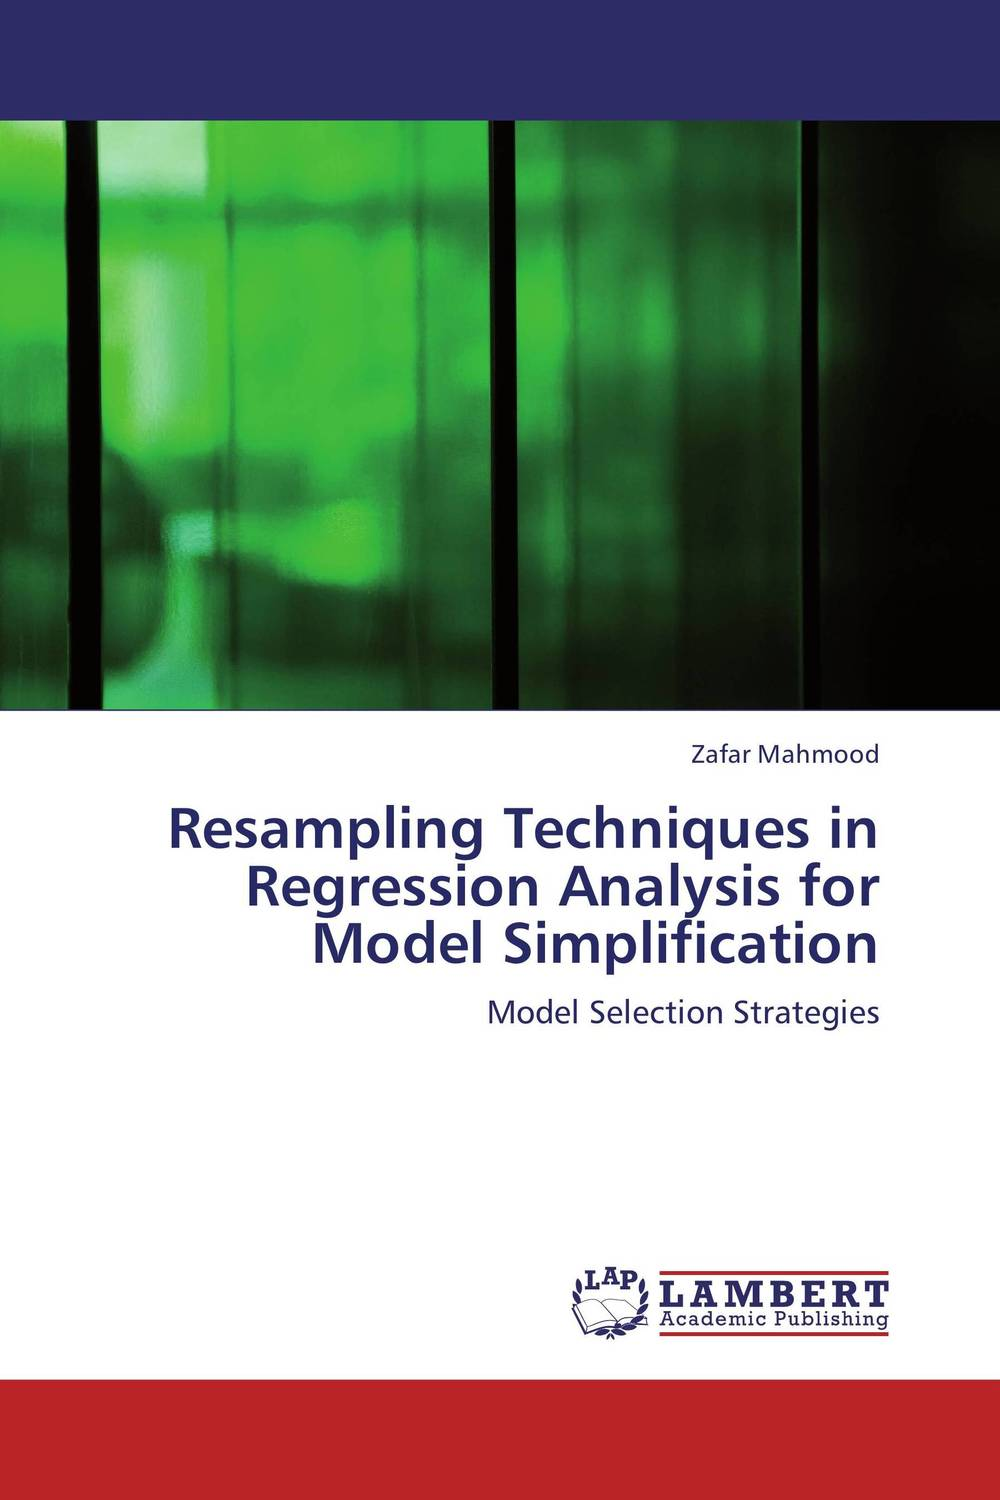 Resampling Techniques in Regression Analysis for Model Simplification linear regression models with heteroscedastic errors